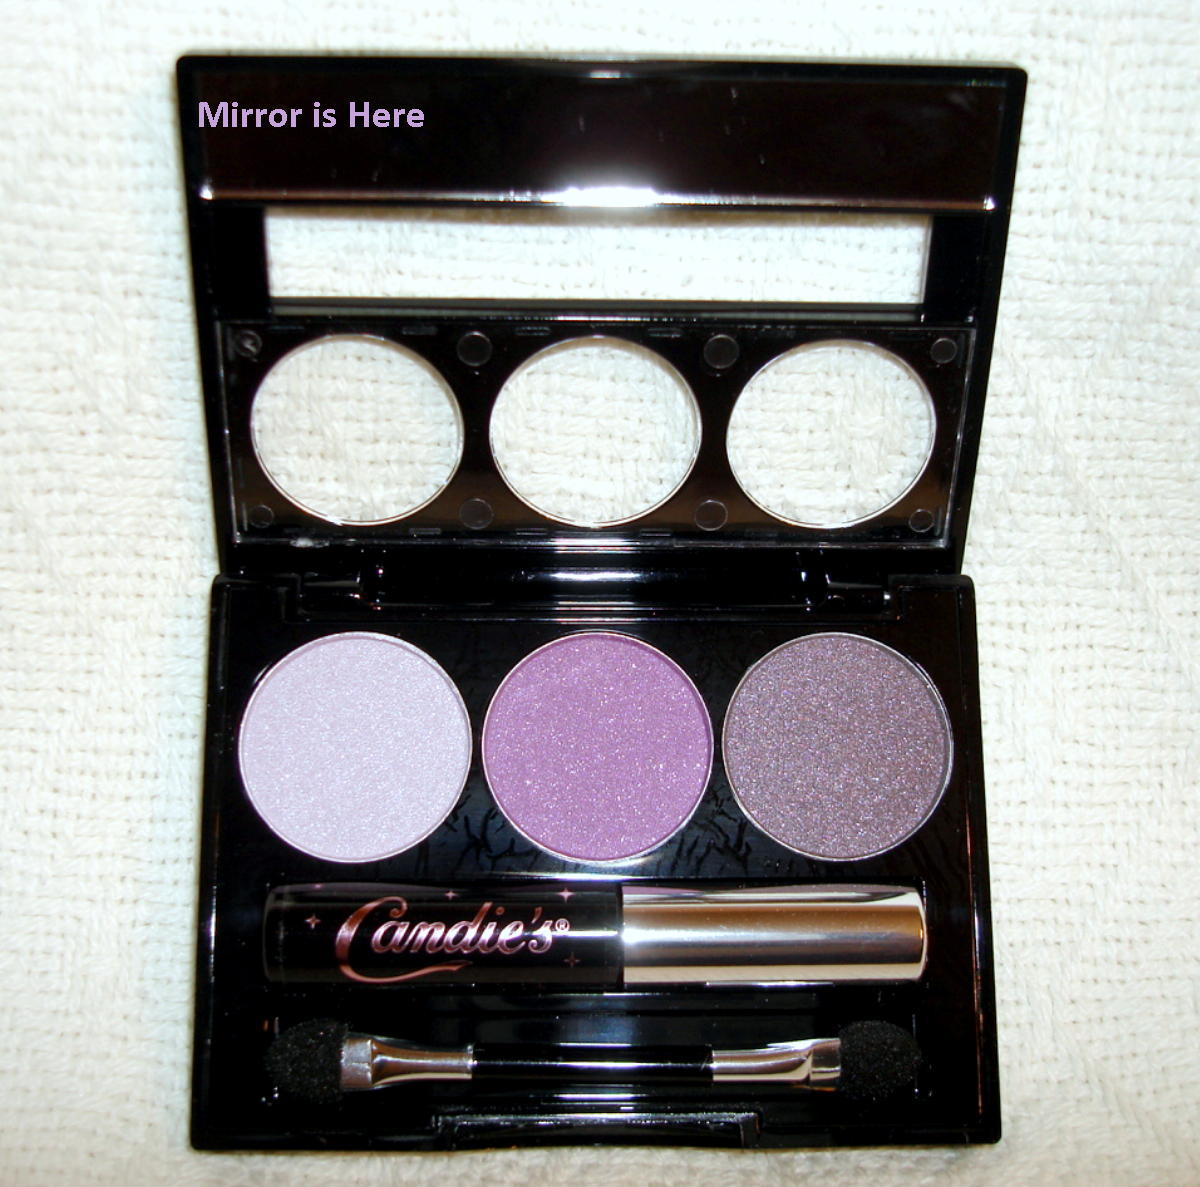 Candies 3 Shade Eyeshadow Palette with Mascara Purple Mirrored Compact Cosmetic